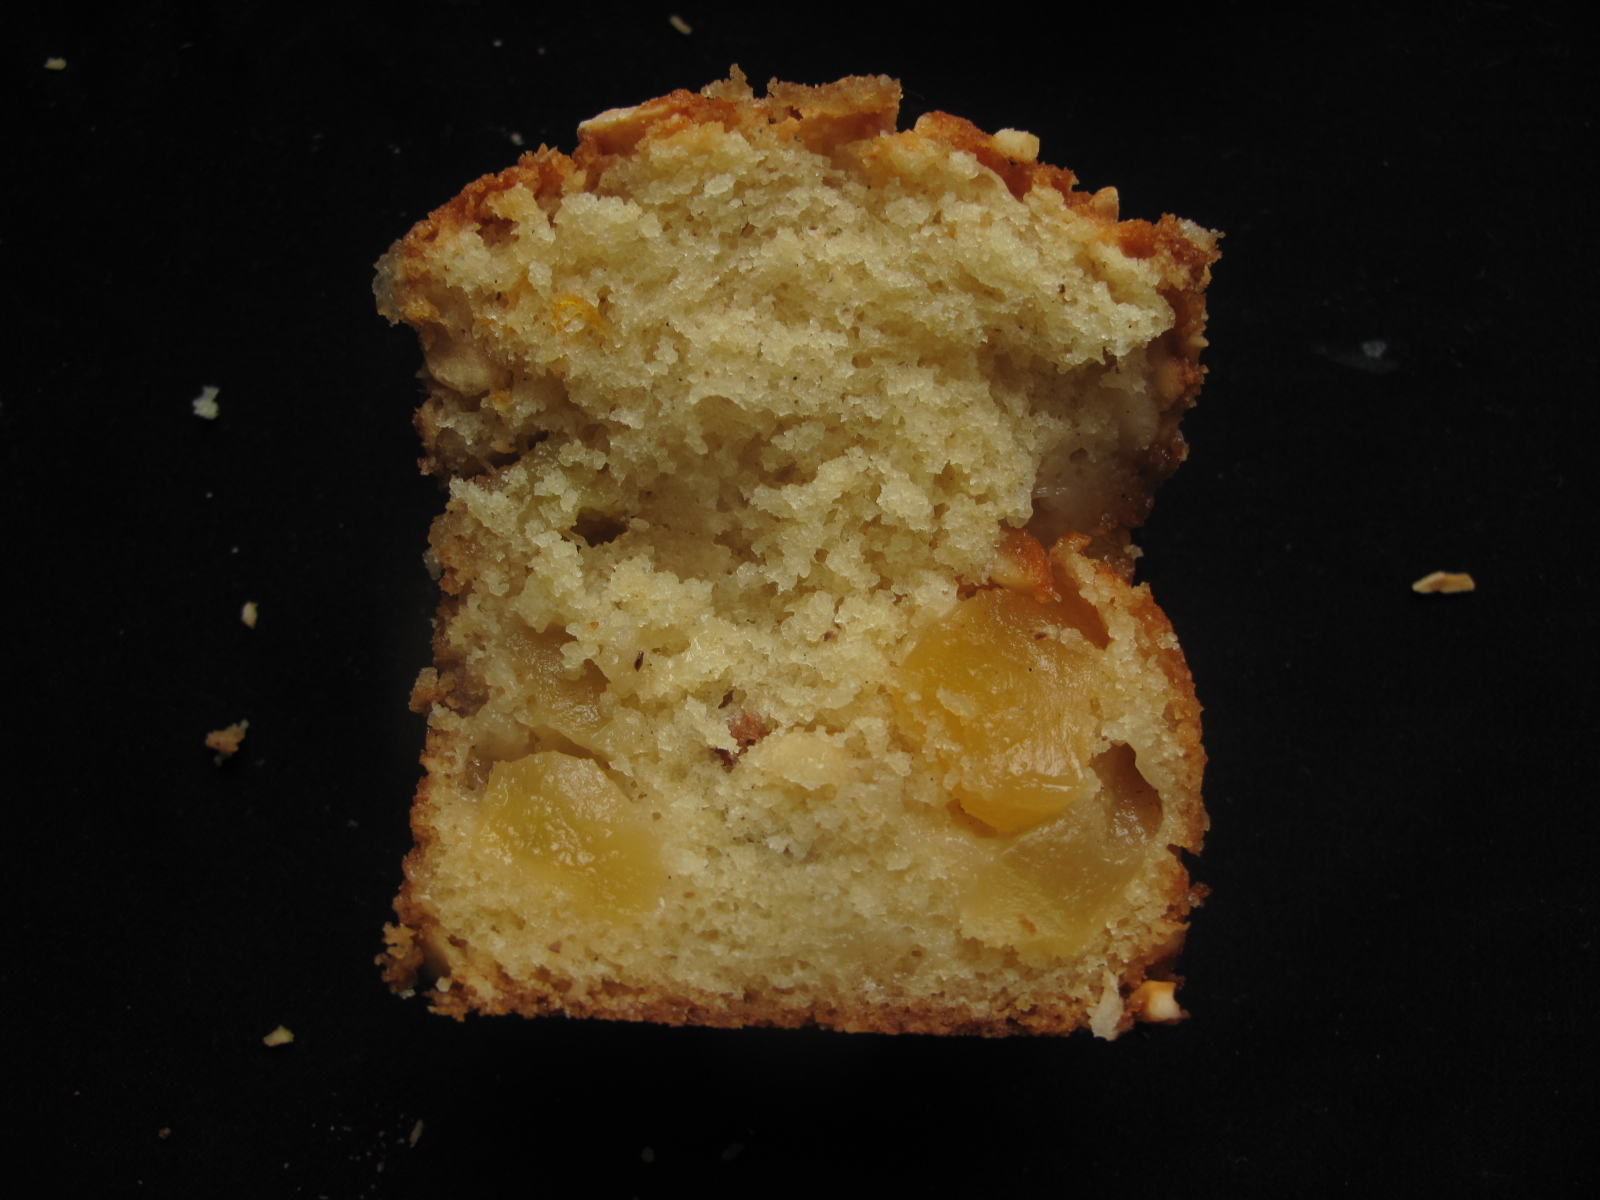 Apple and hazelnut sponge